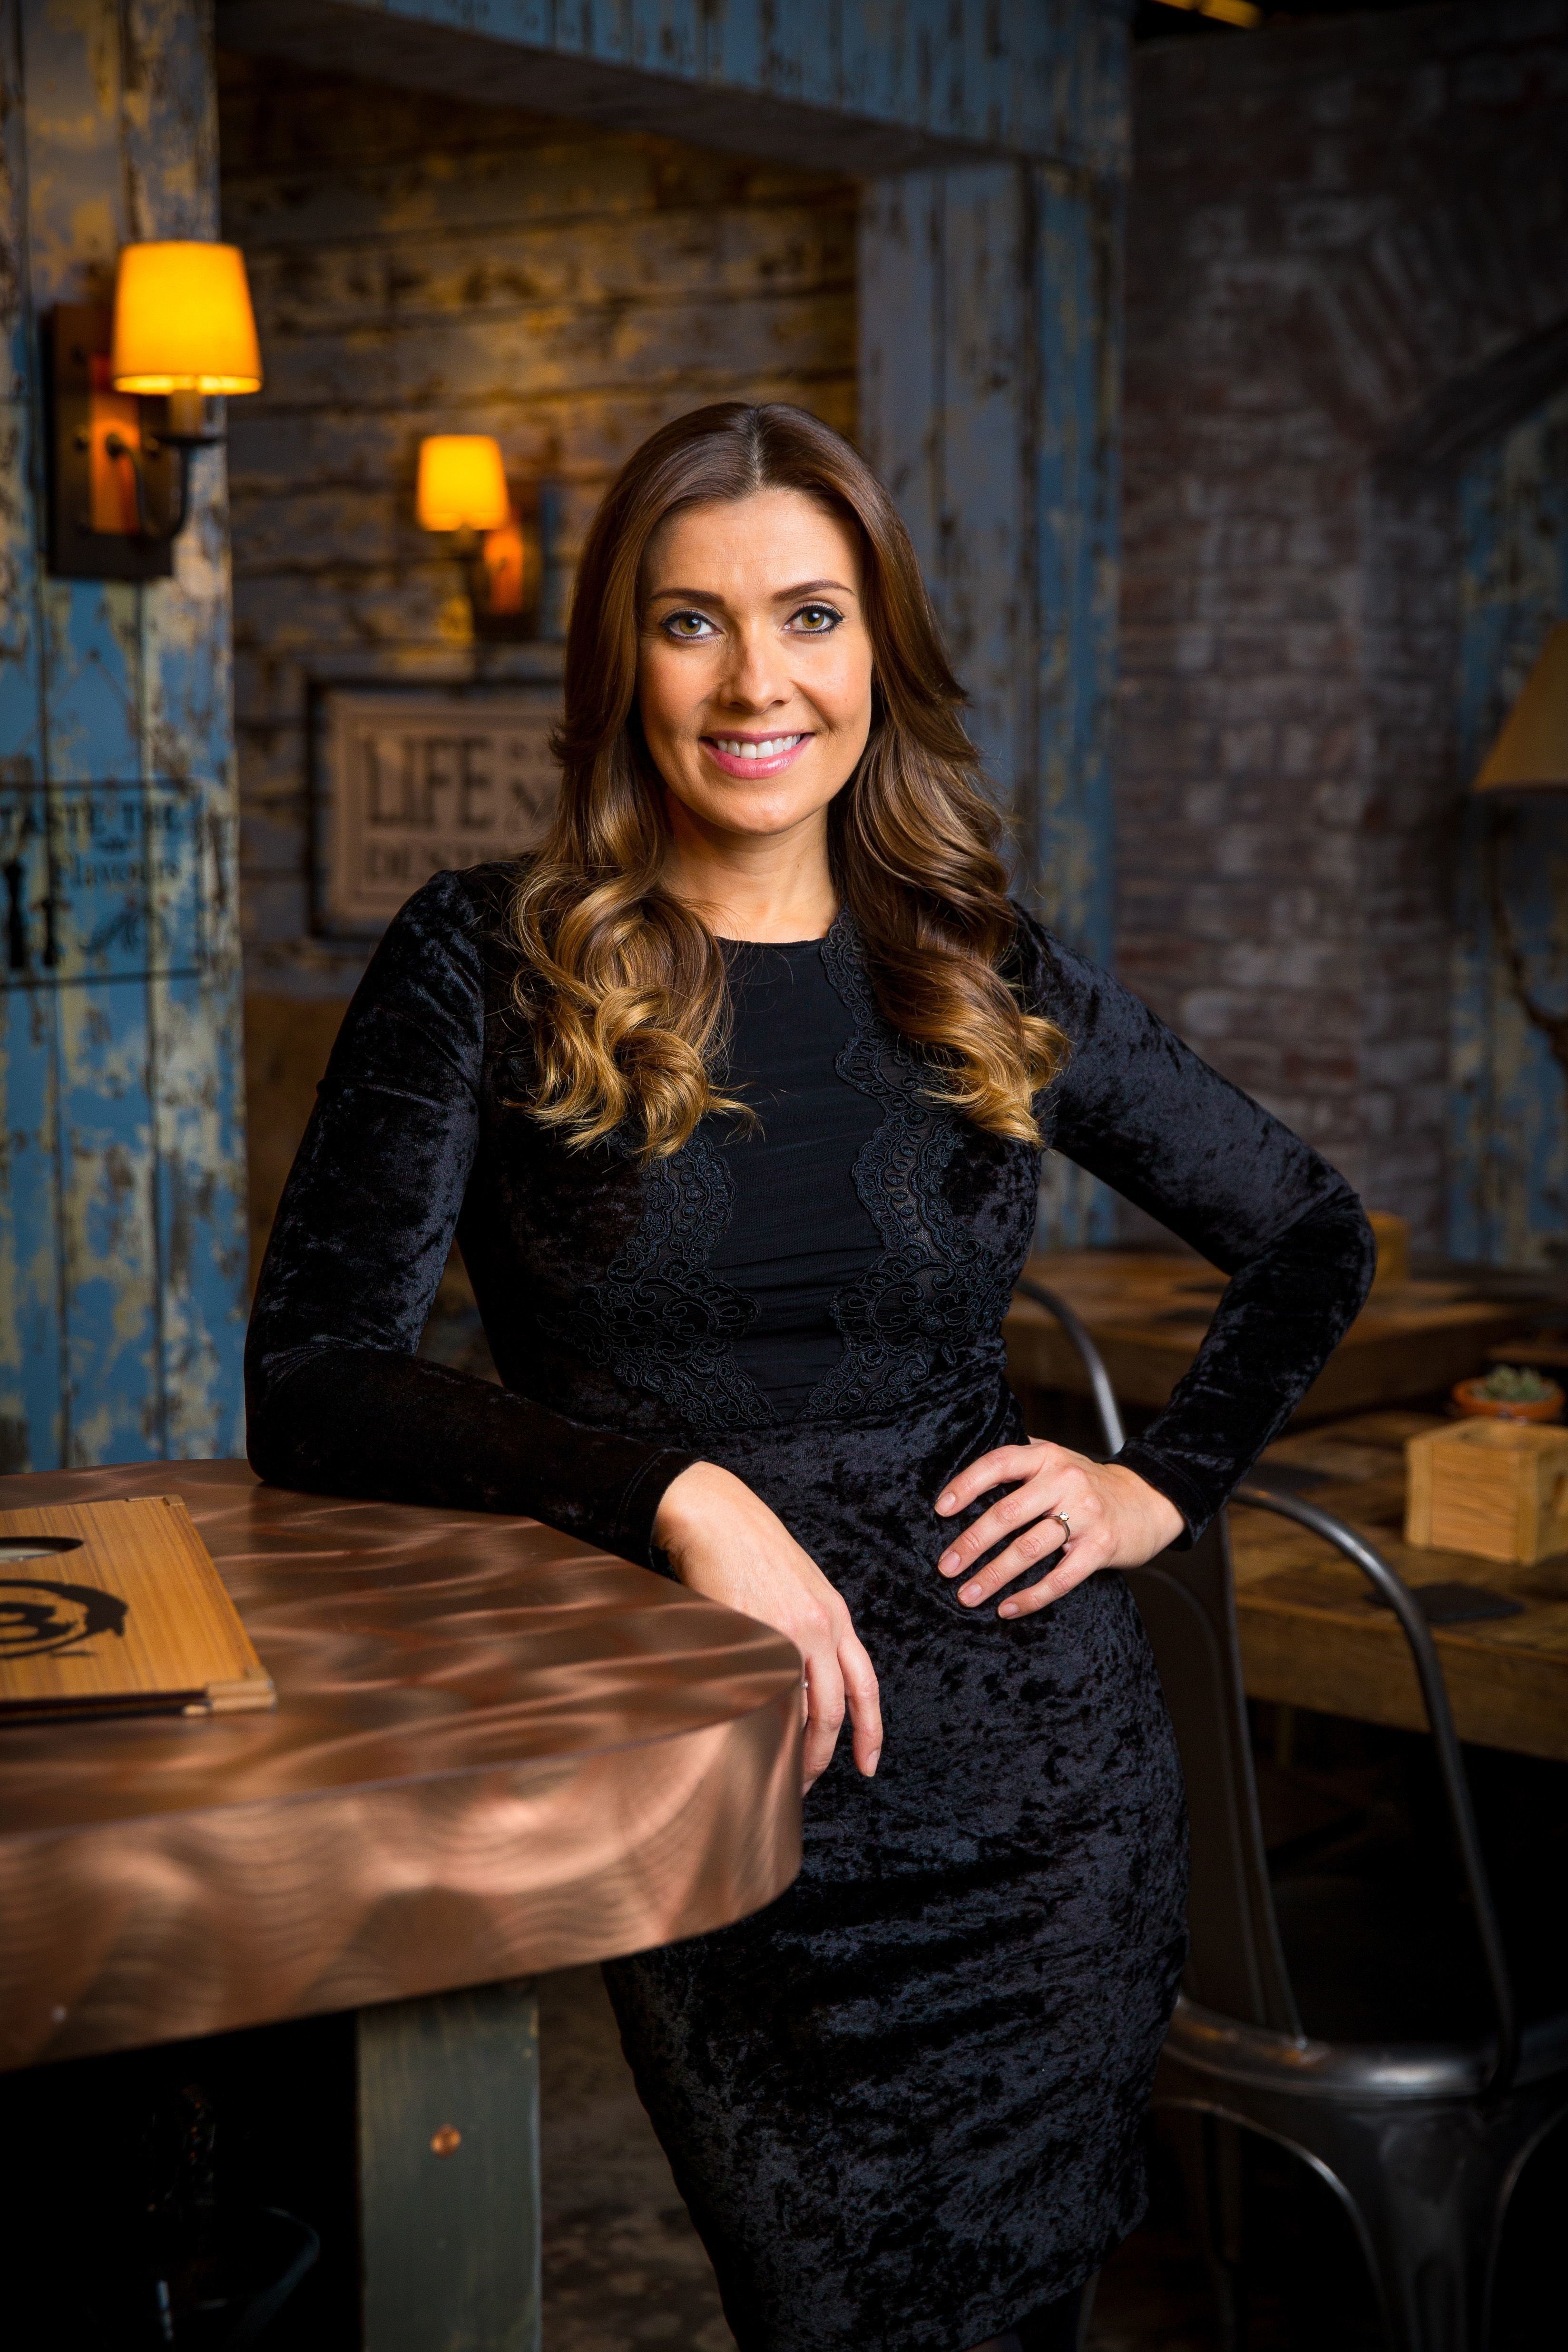 'Corrie' Star Kym Marsh Defends Controversial Storylines, As Producer Kate Oates Steps